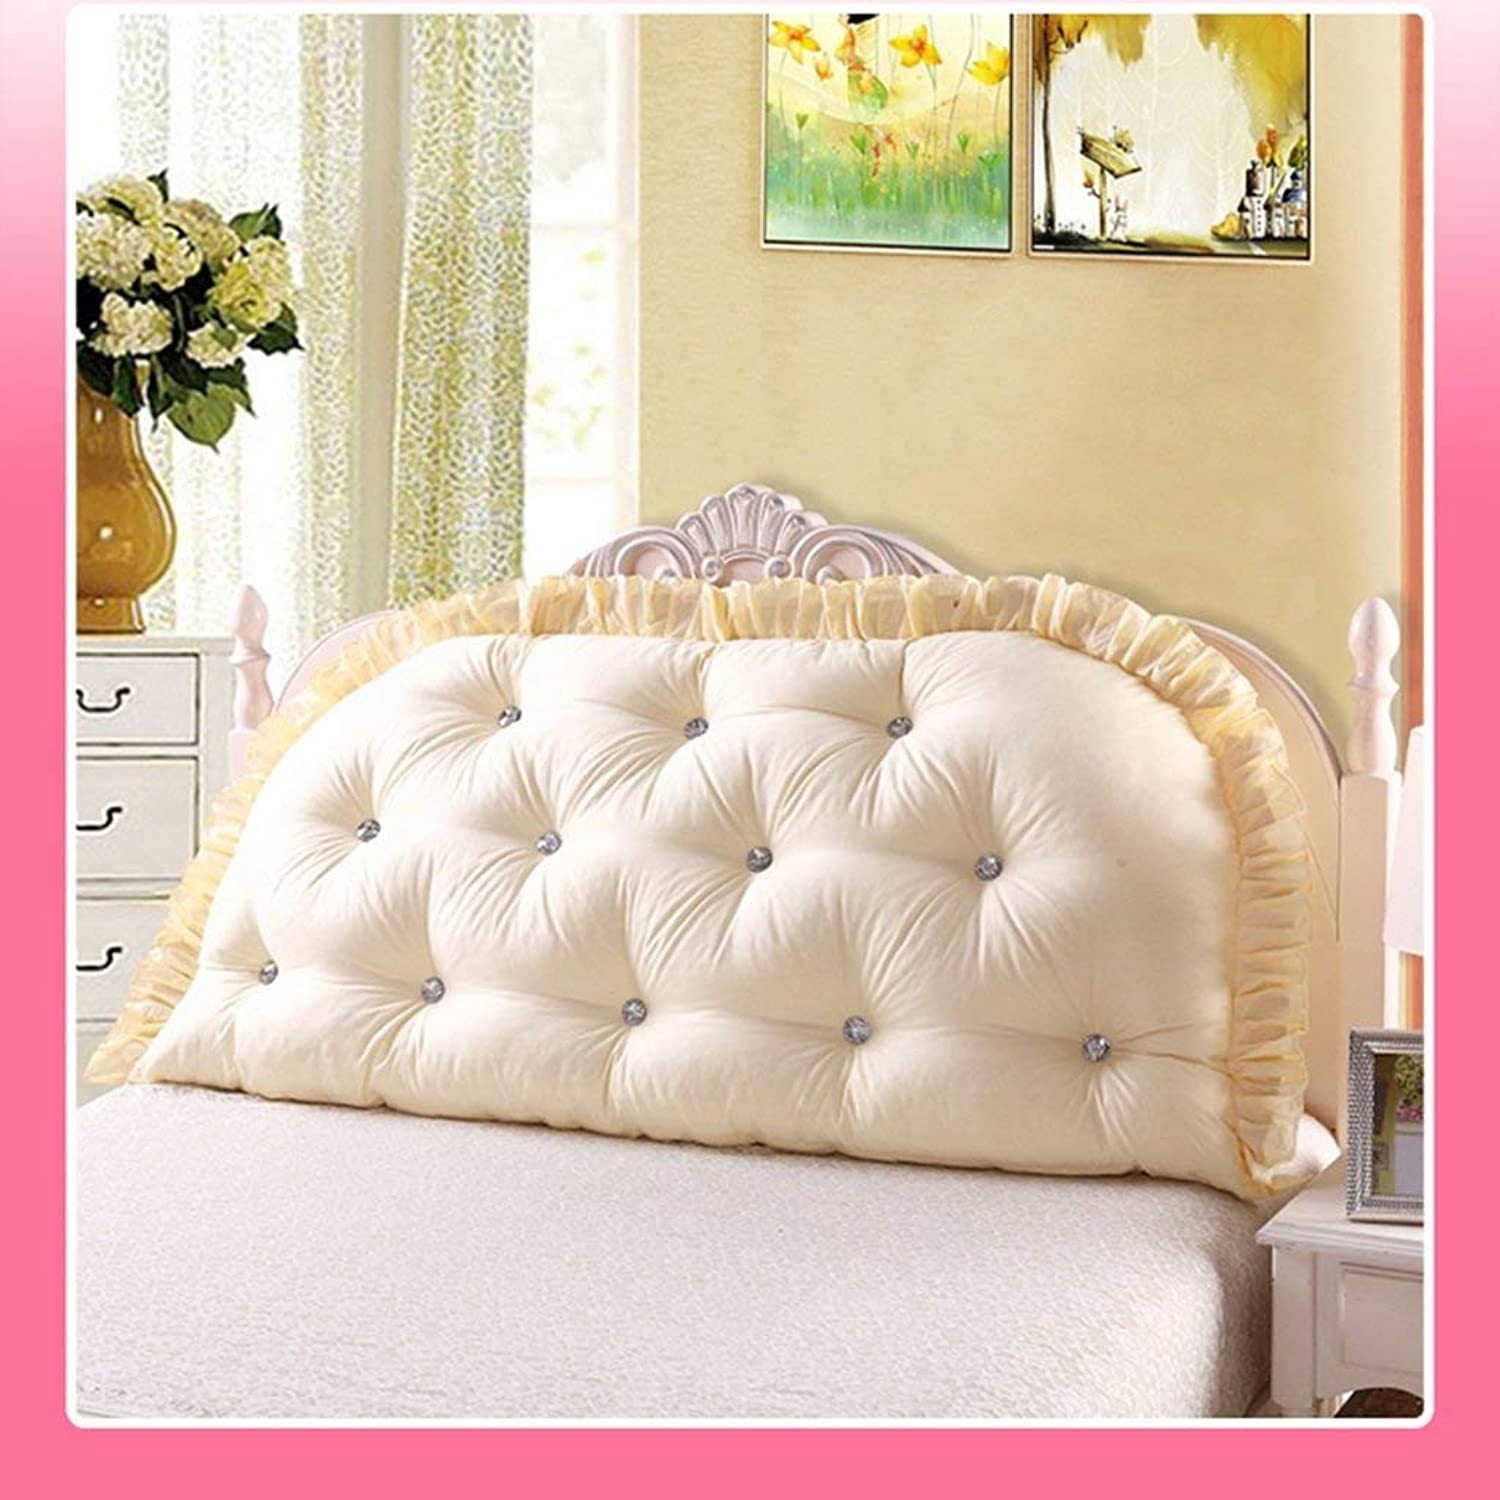 Bed Head Cushion Double Long Pillow Bedside Big Backrest Core Positioning Supports Reading Comfortable Headrests, QiXian